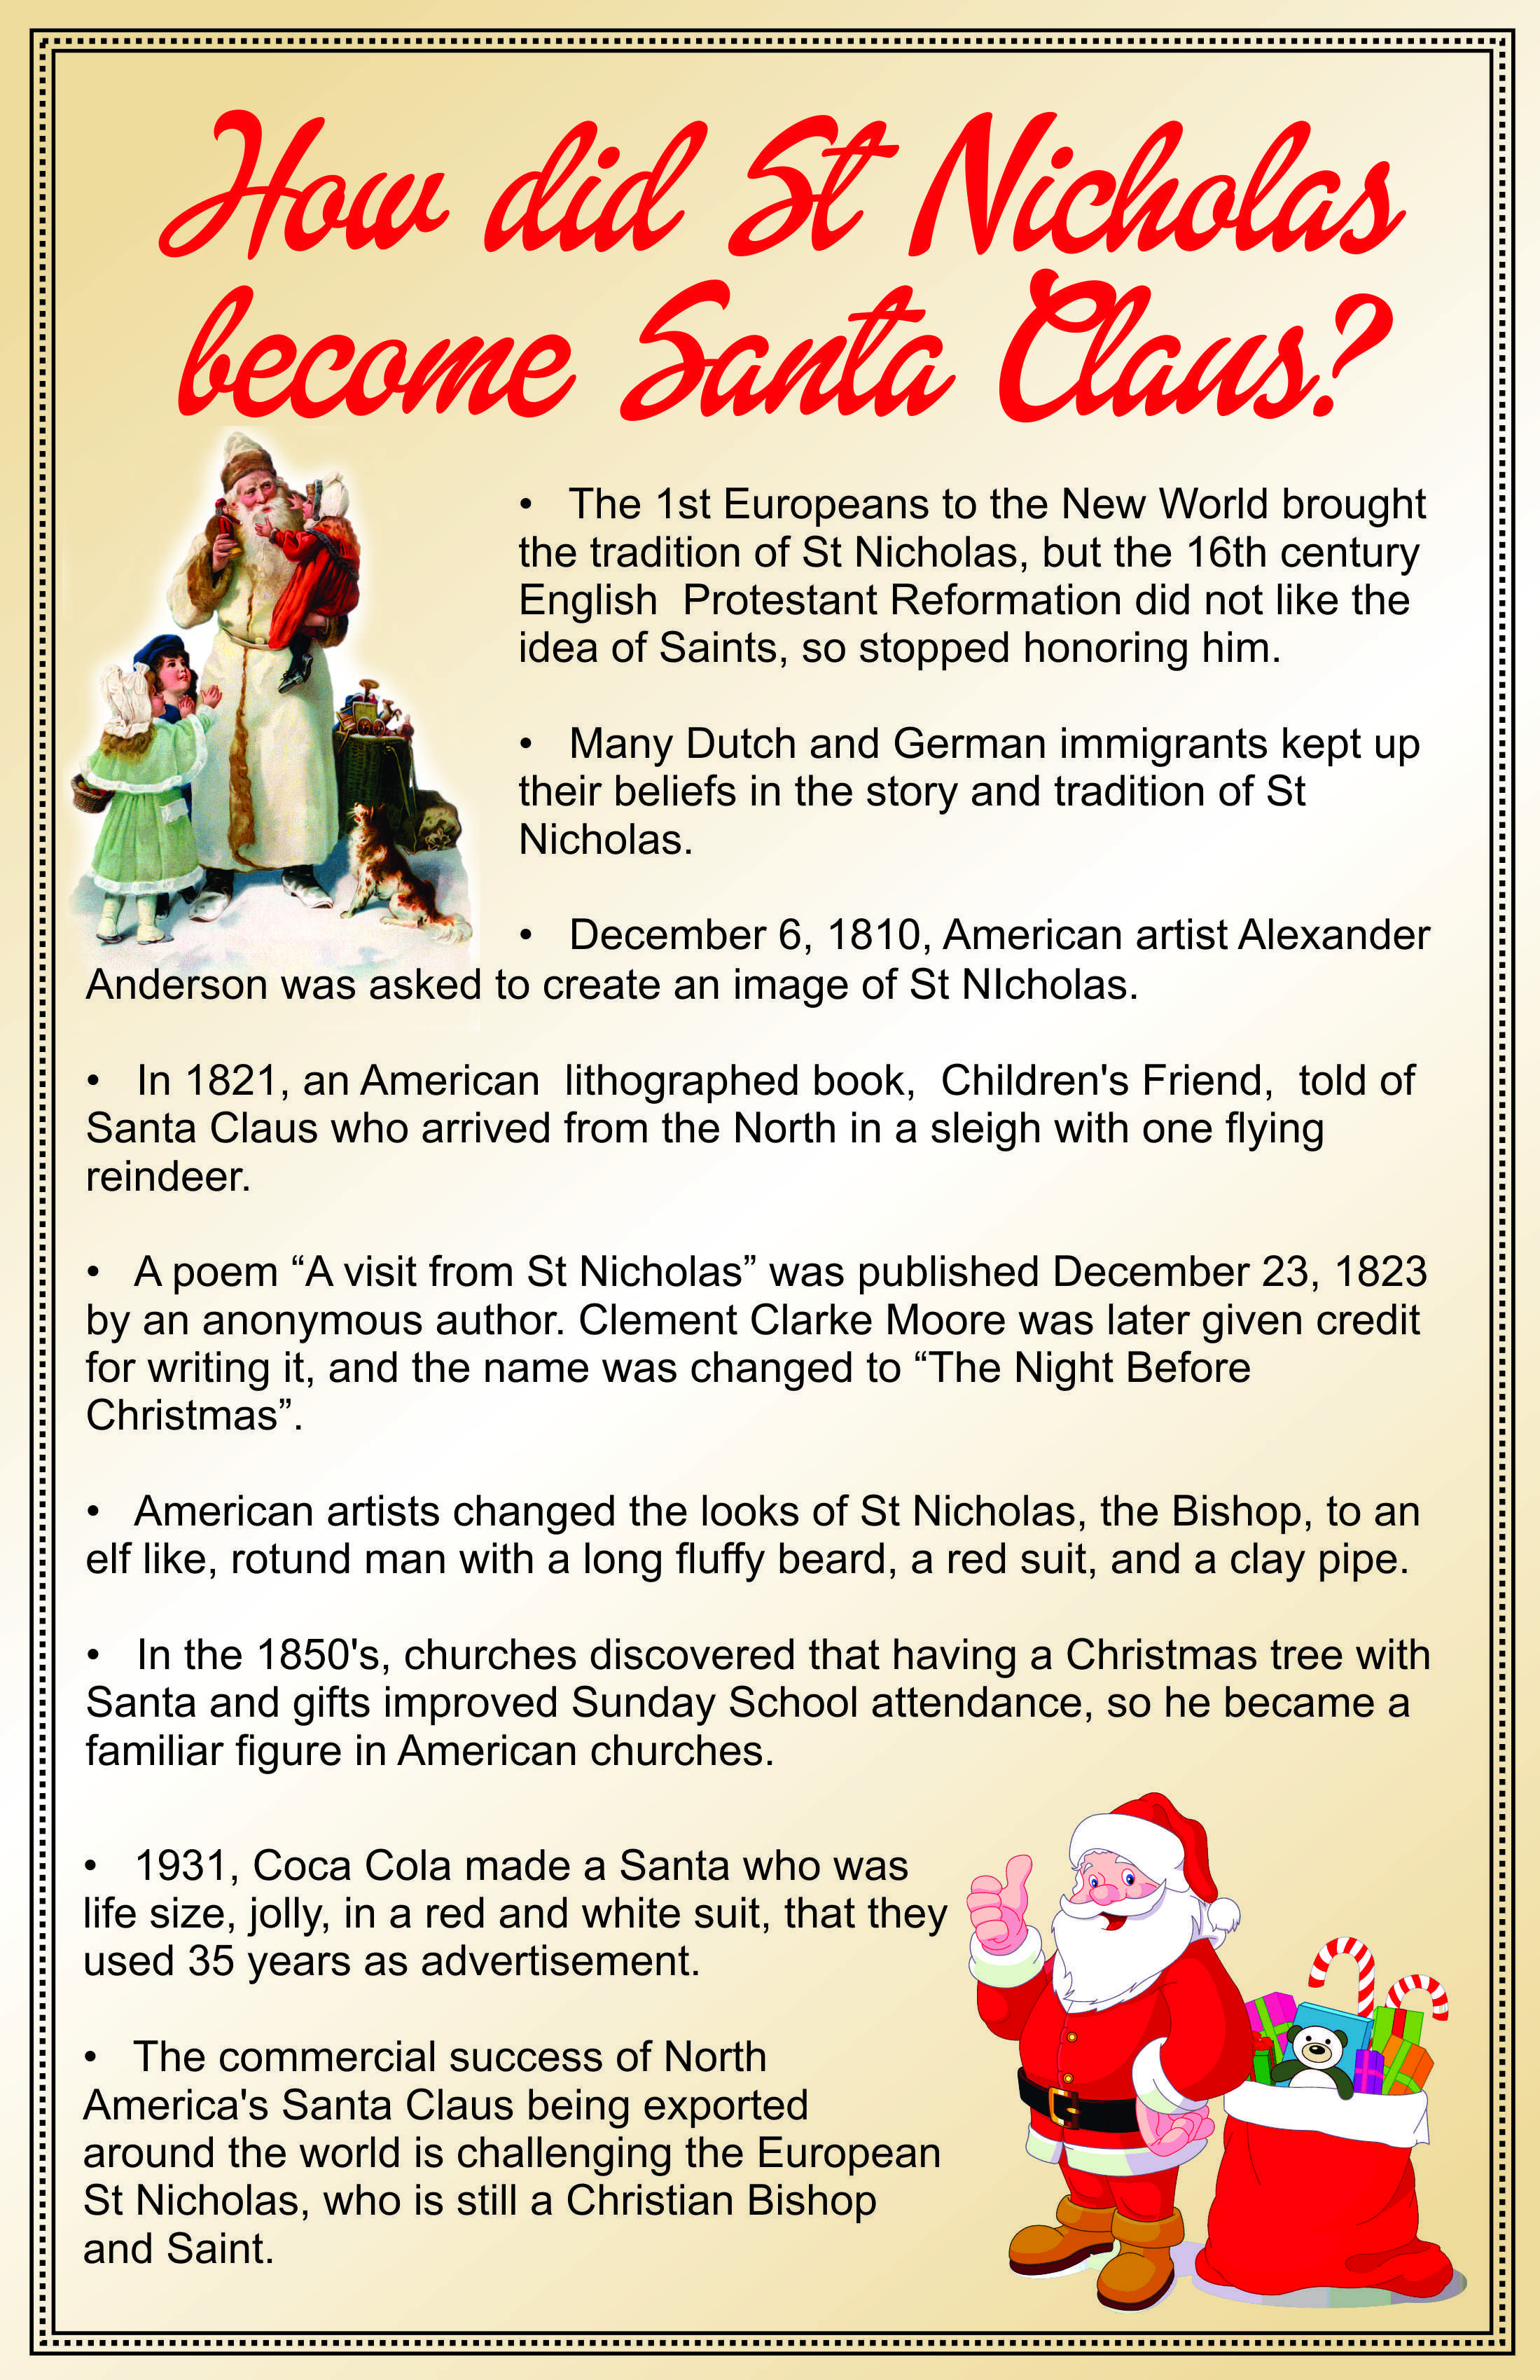 Christmas Trivia Facts.Pin By Kathy Mccurdy On Christmas Facts Christmas Trivia